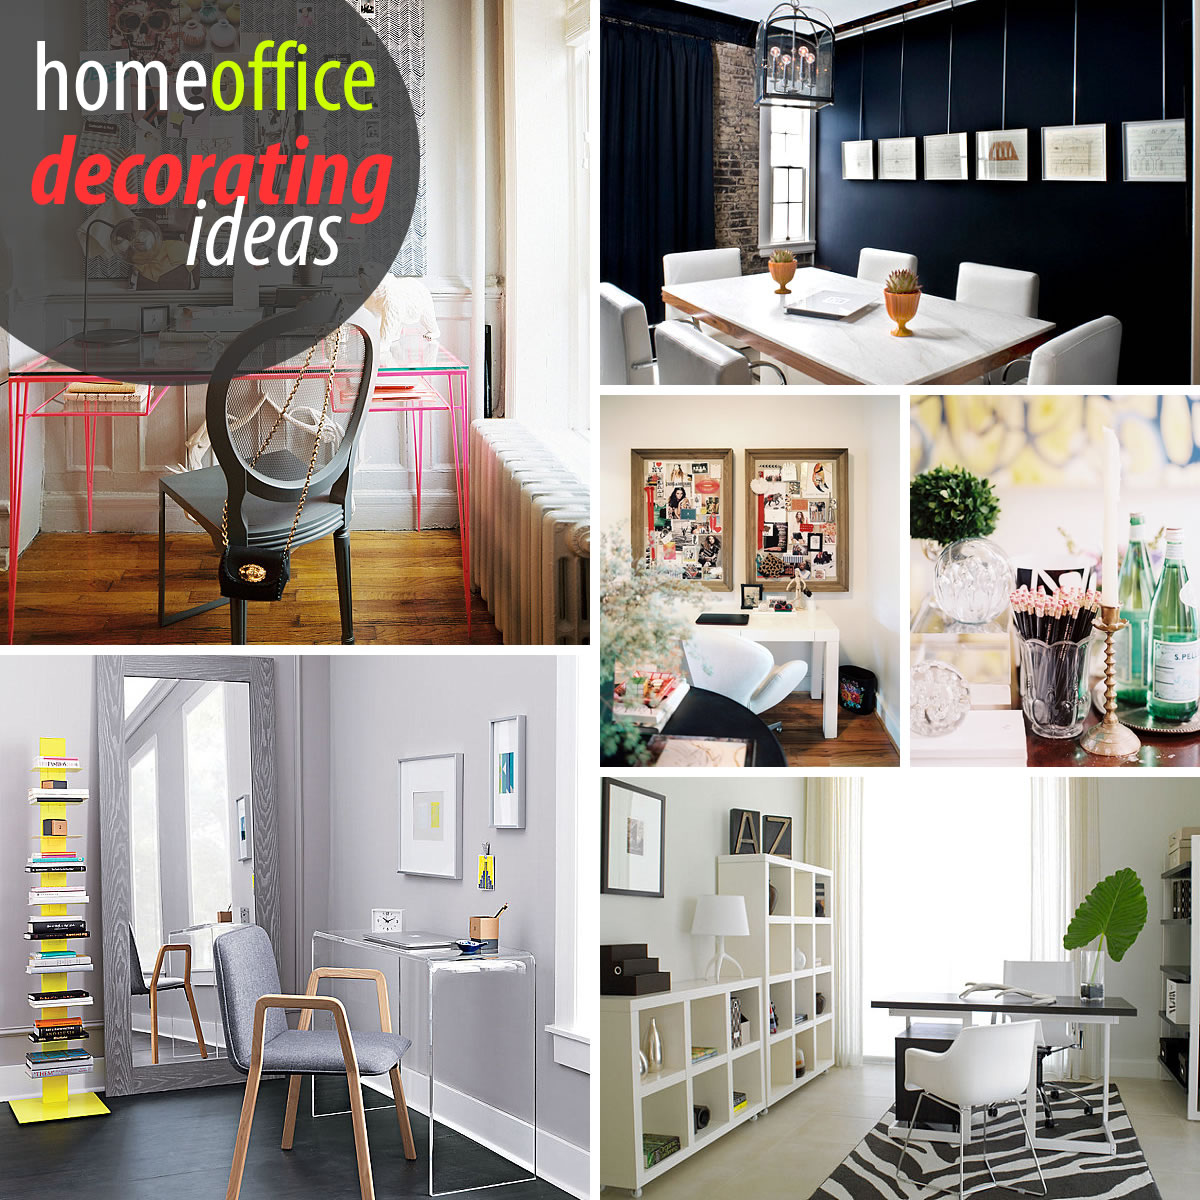 Fullsize Of Creative Home Decor Ideas